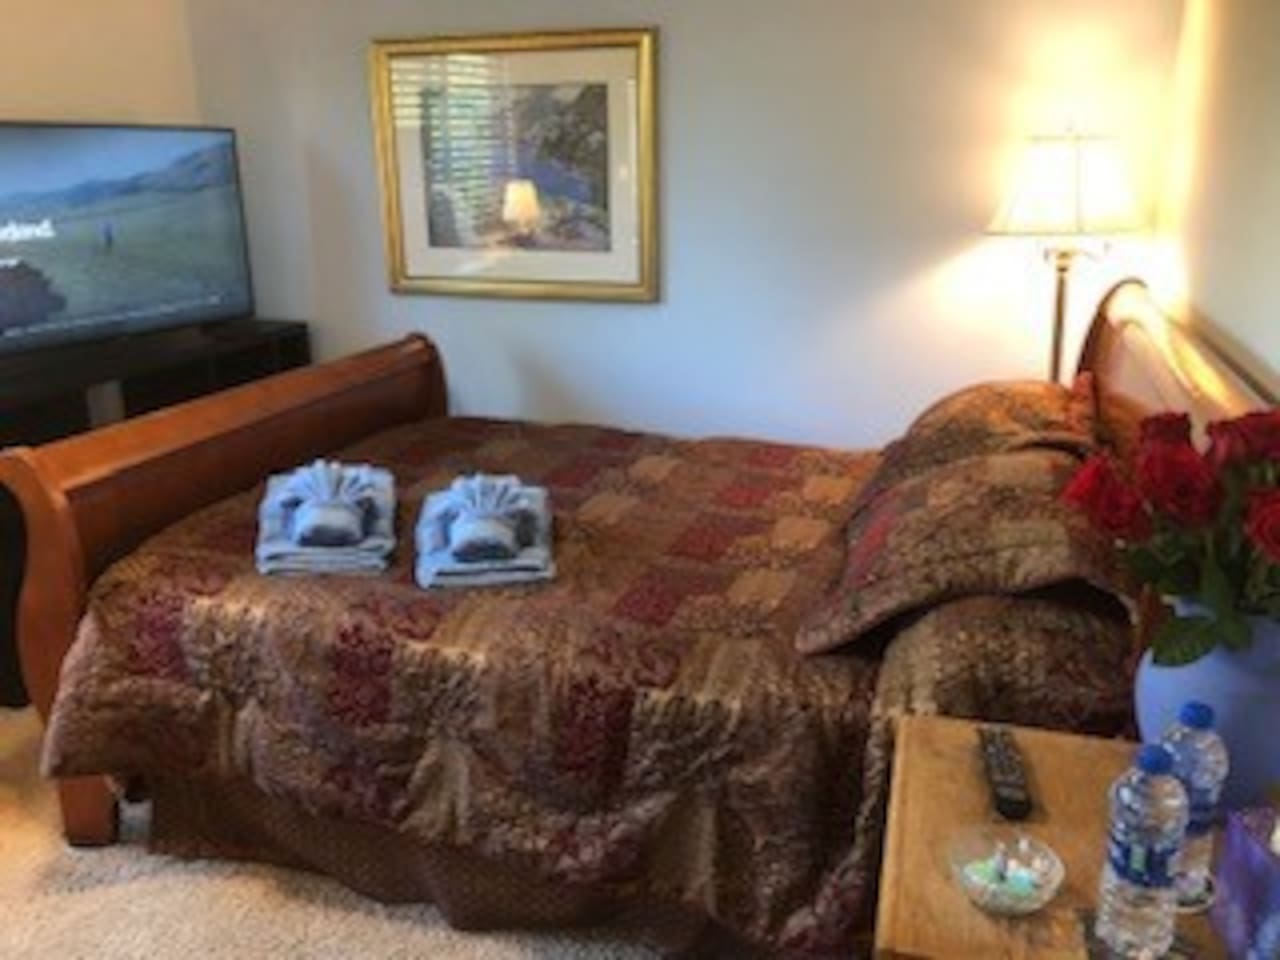 Settle in your queen sleigh bed, watching Netflix on your Smart TV, cooled by ocean breezes! Wake up refreshed to a hot breakfast!